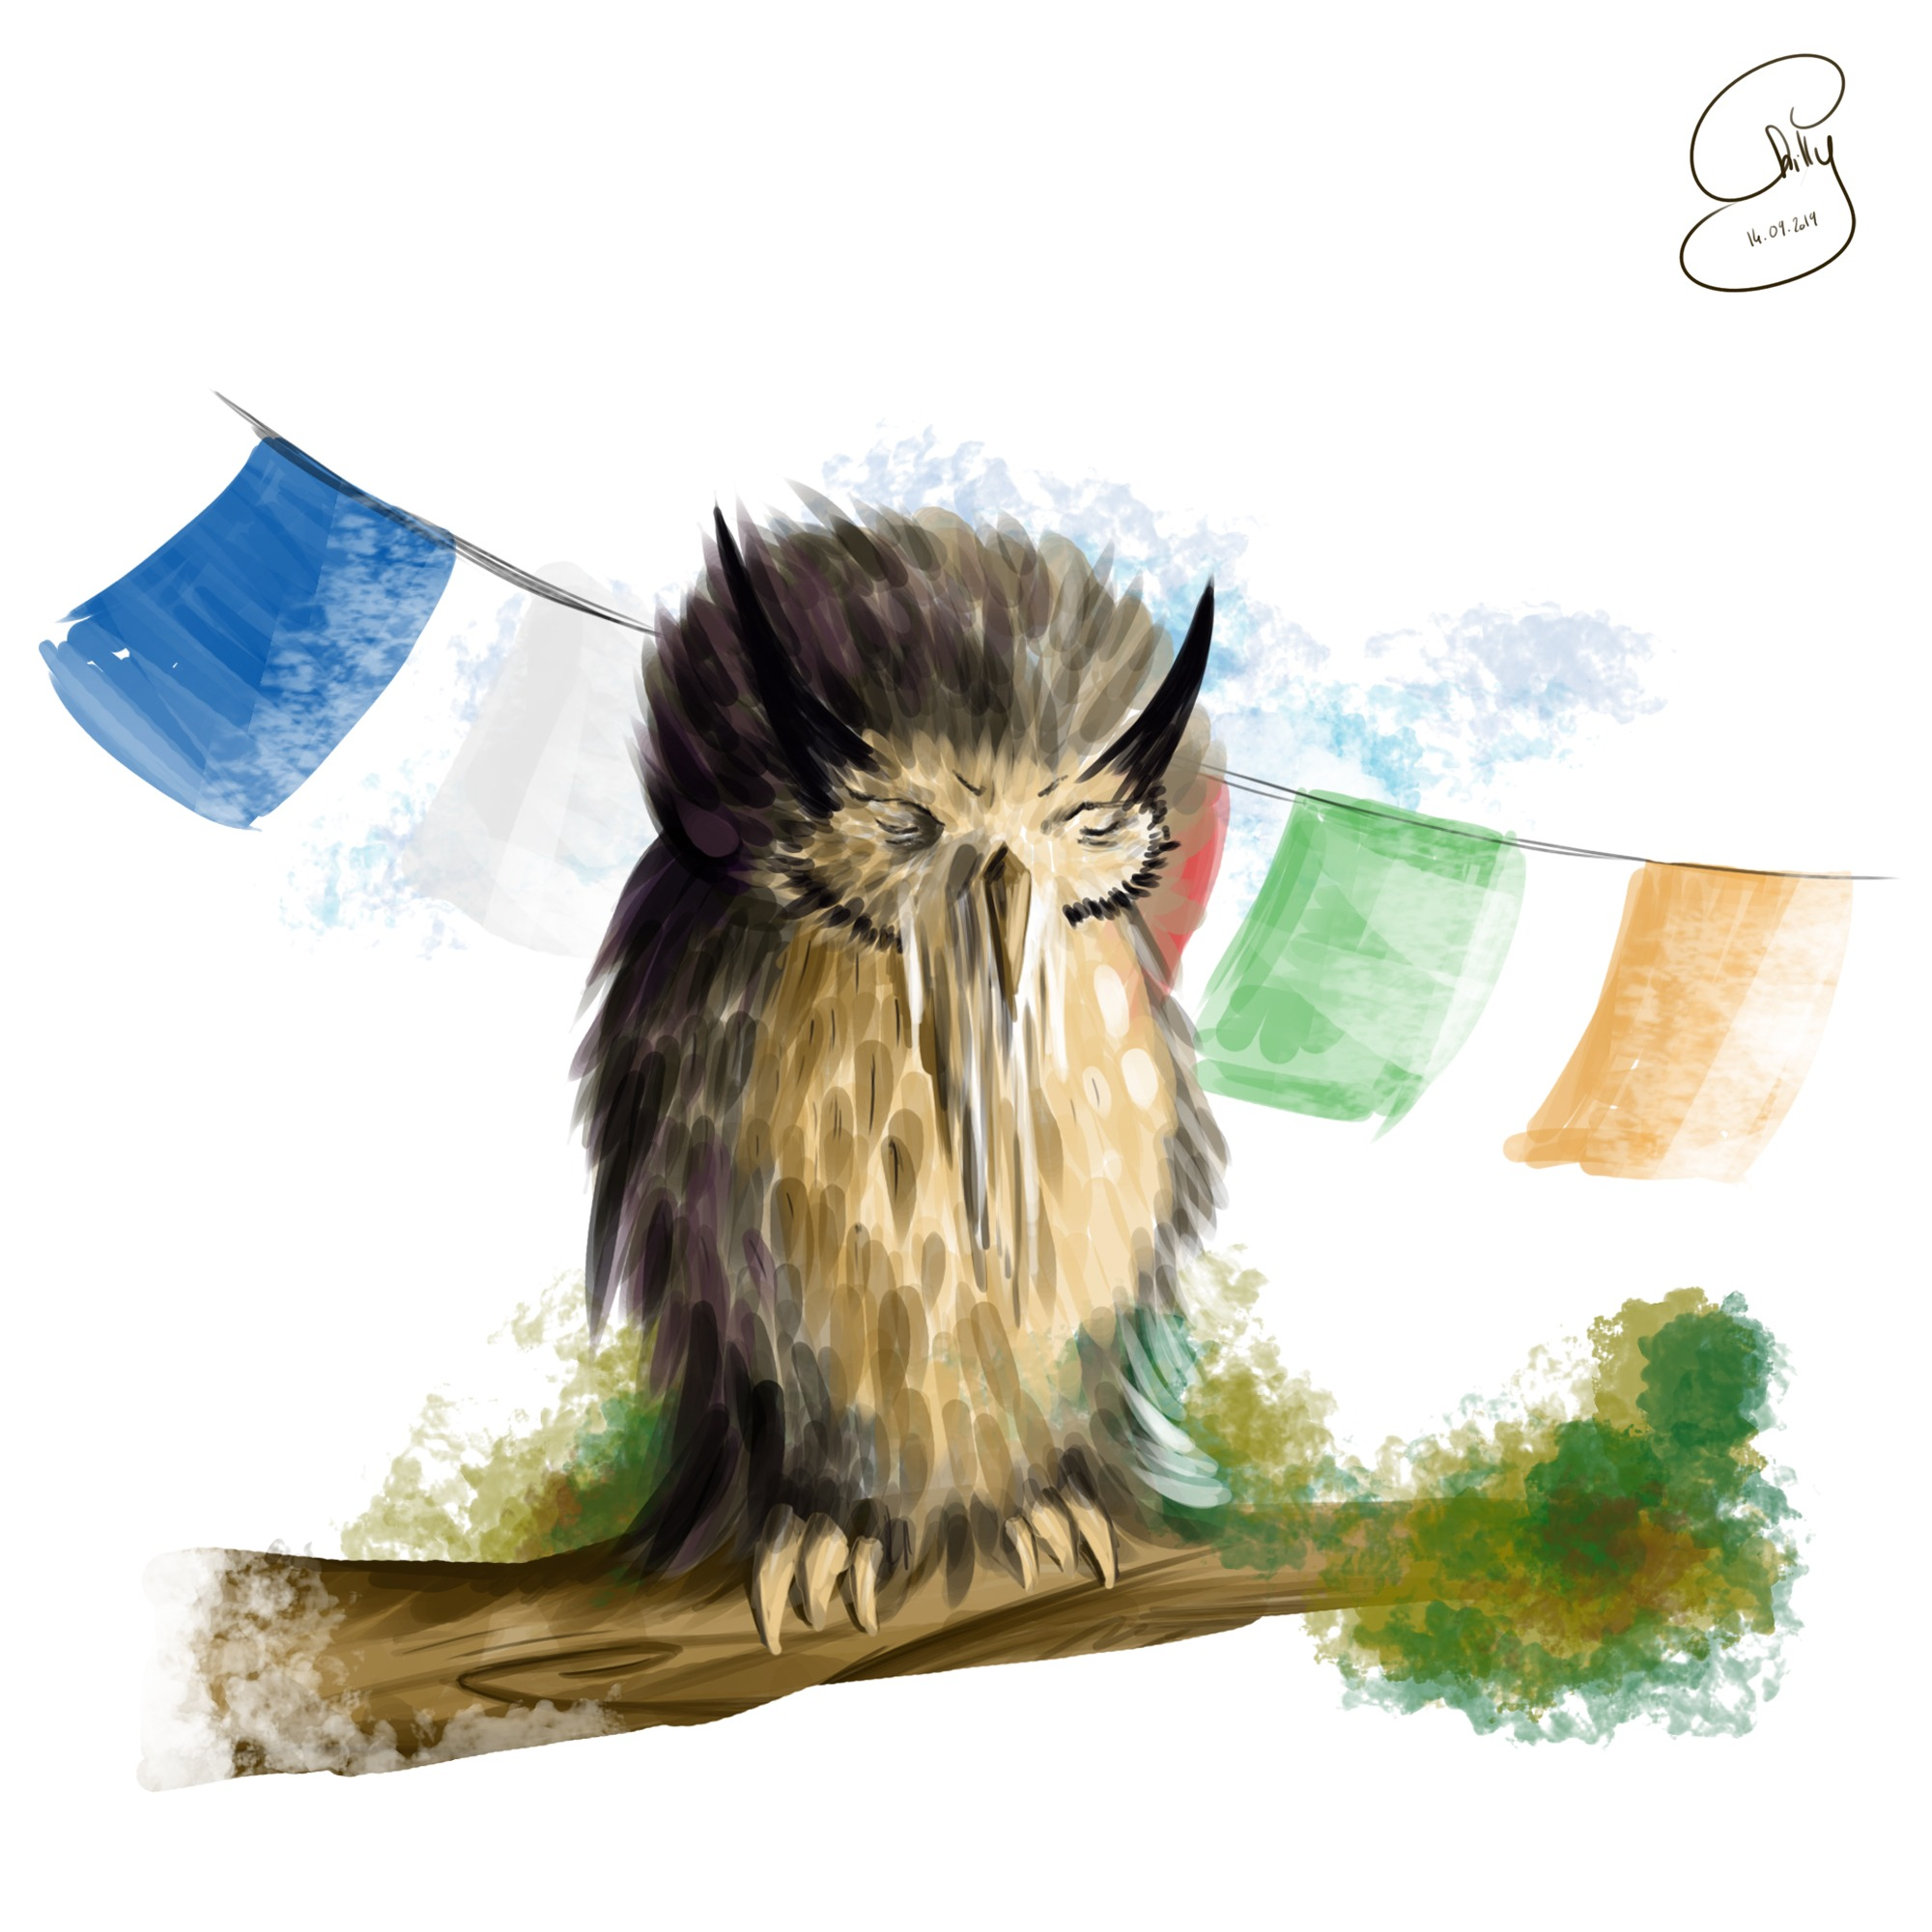 The Old Wise Owl